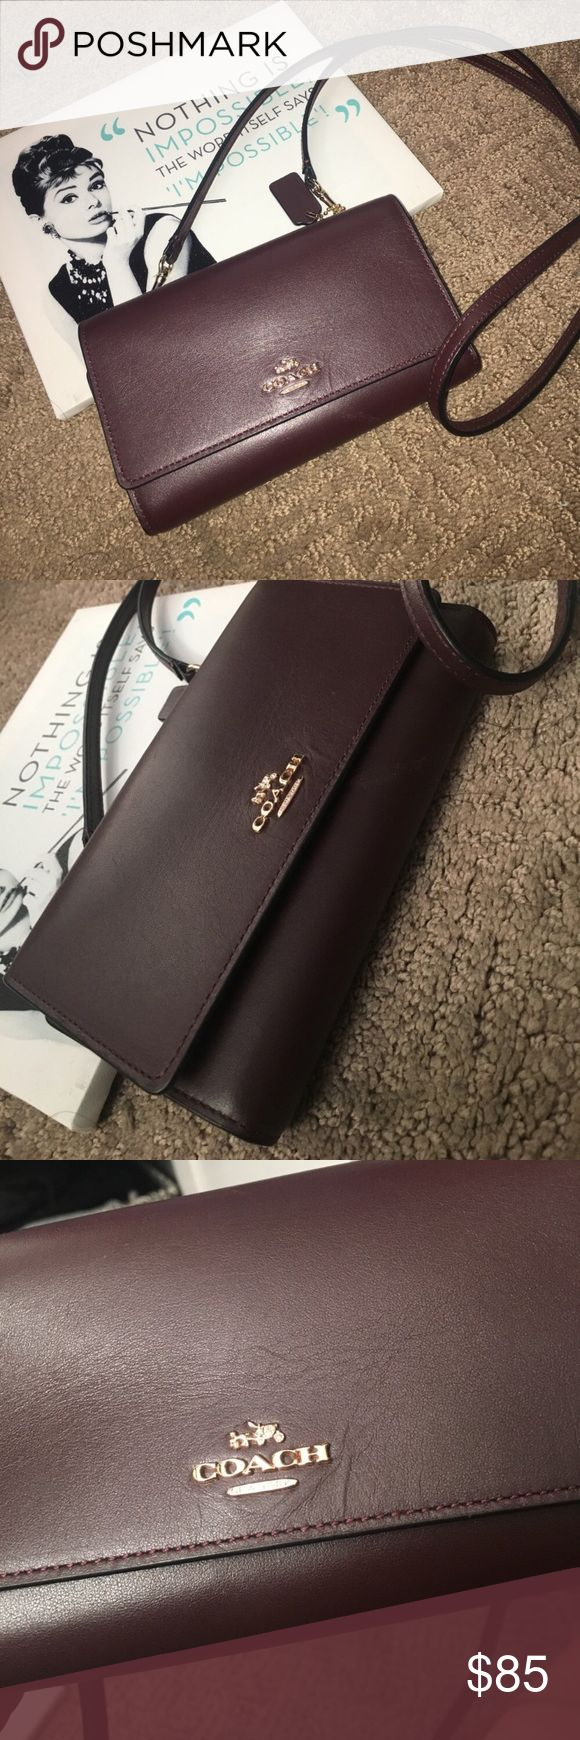 Coach phone crossbody 🌻 Excellent condition. Used only for a couple weeks. This is smooth leather. No scratches that I can see. Just alittle wrinkle in the leather nxt to the coach emblem. Color is oxblood which is a plum/wine. Gold hardware. Fits an iphone7. Strap is NOT adjustable but can be removed to use as just a wallet. Inbox with questions. These are still available from coach in other colors. This color is very rare. No low balls. No trading. 😊 Coach Bags Crossbody Bags